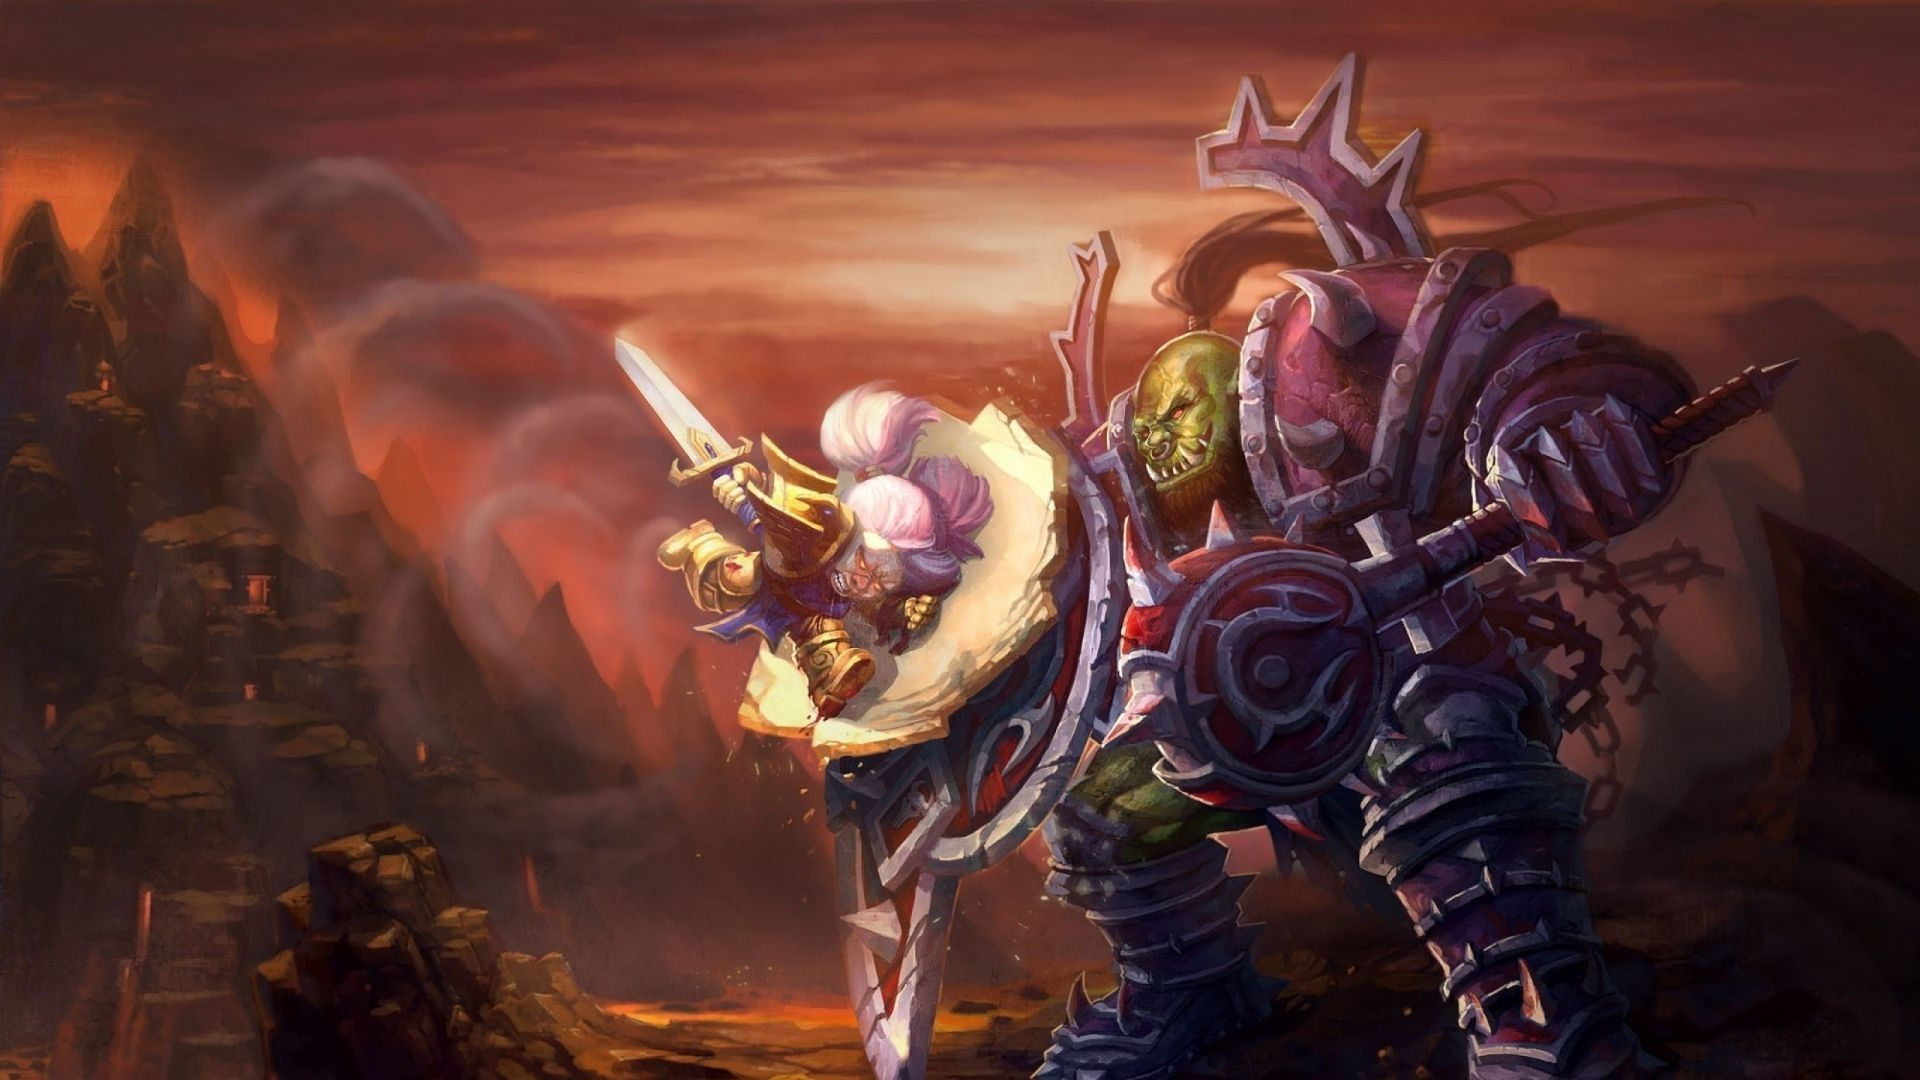 Download Wallpaper World of warcraft, Wow, Orc, Warrior .